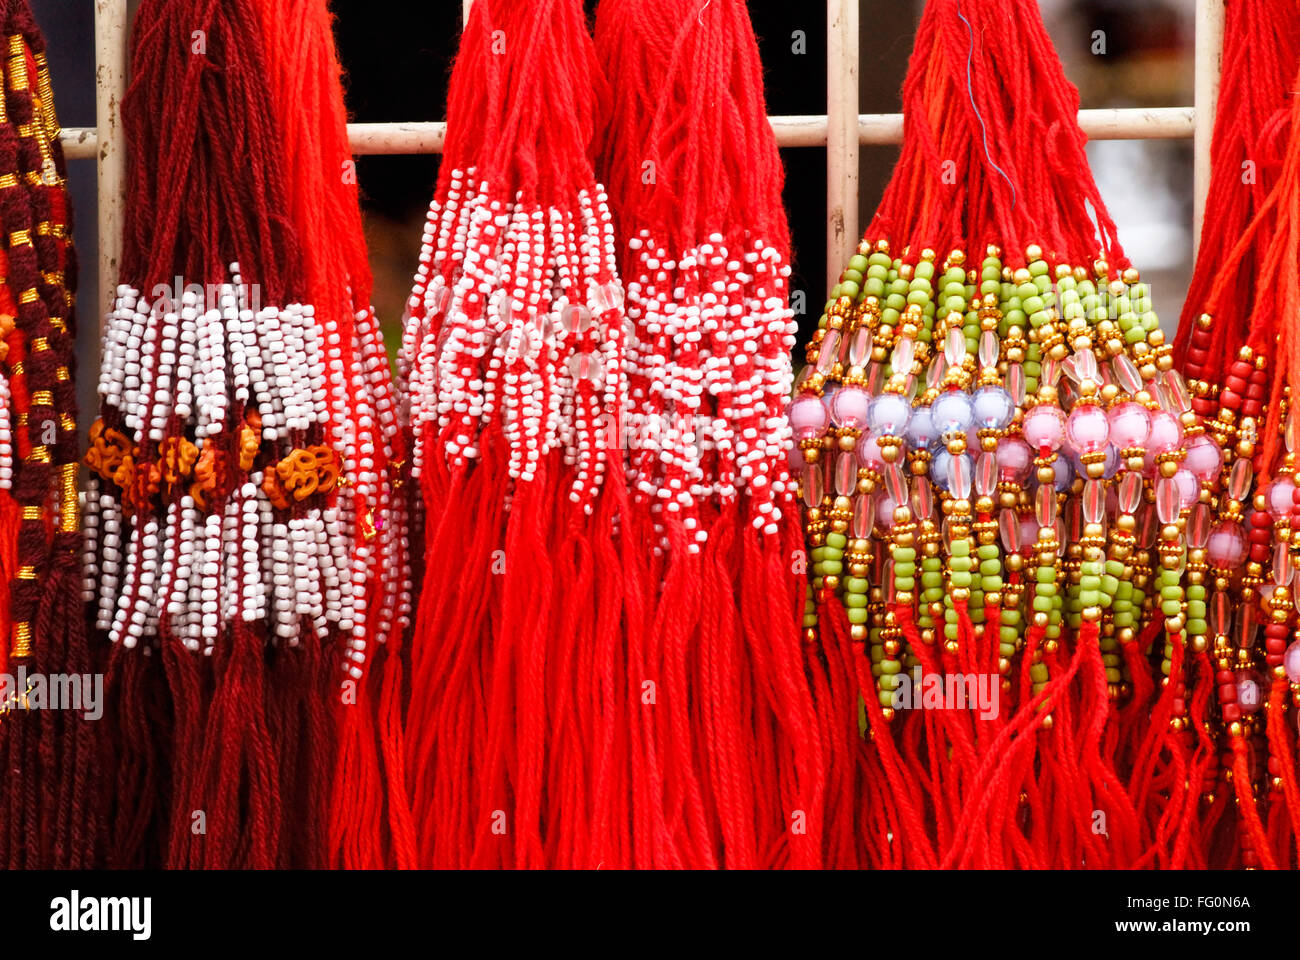 Colourful holy threads used to tied on wrists for protection from bad sights - Stock Image